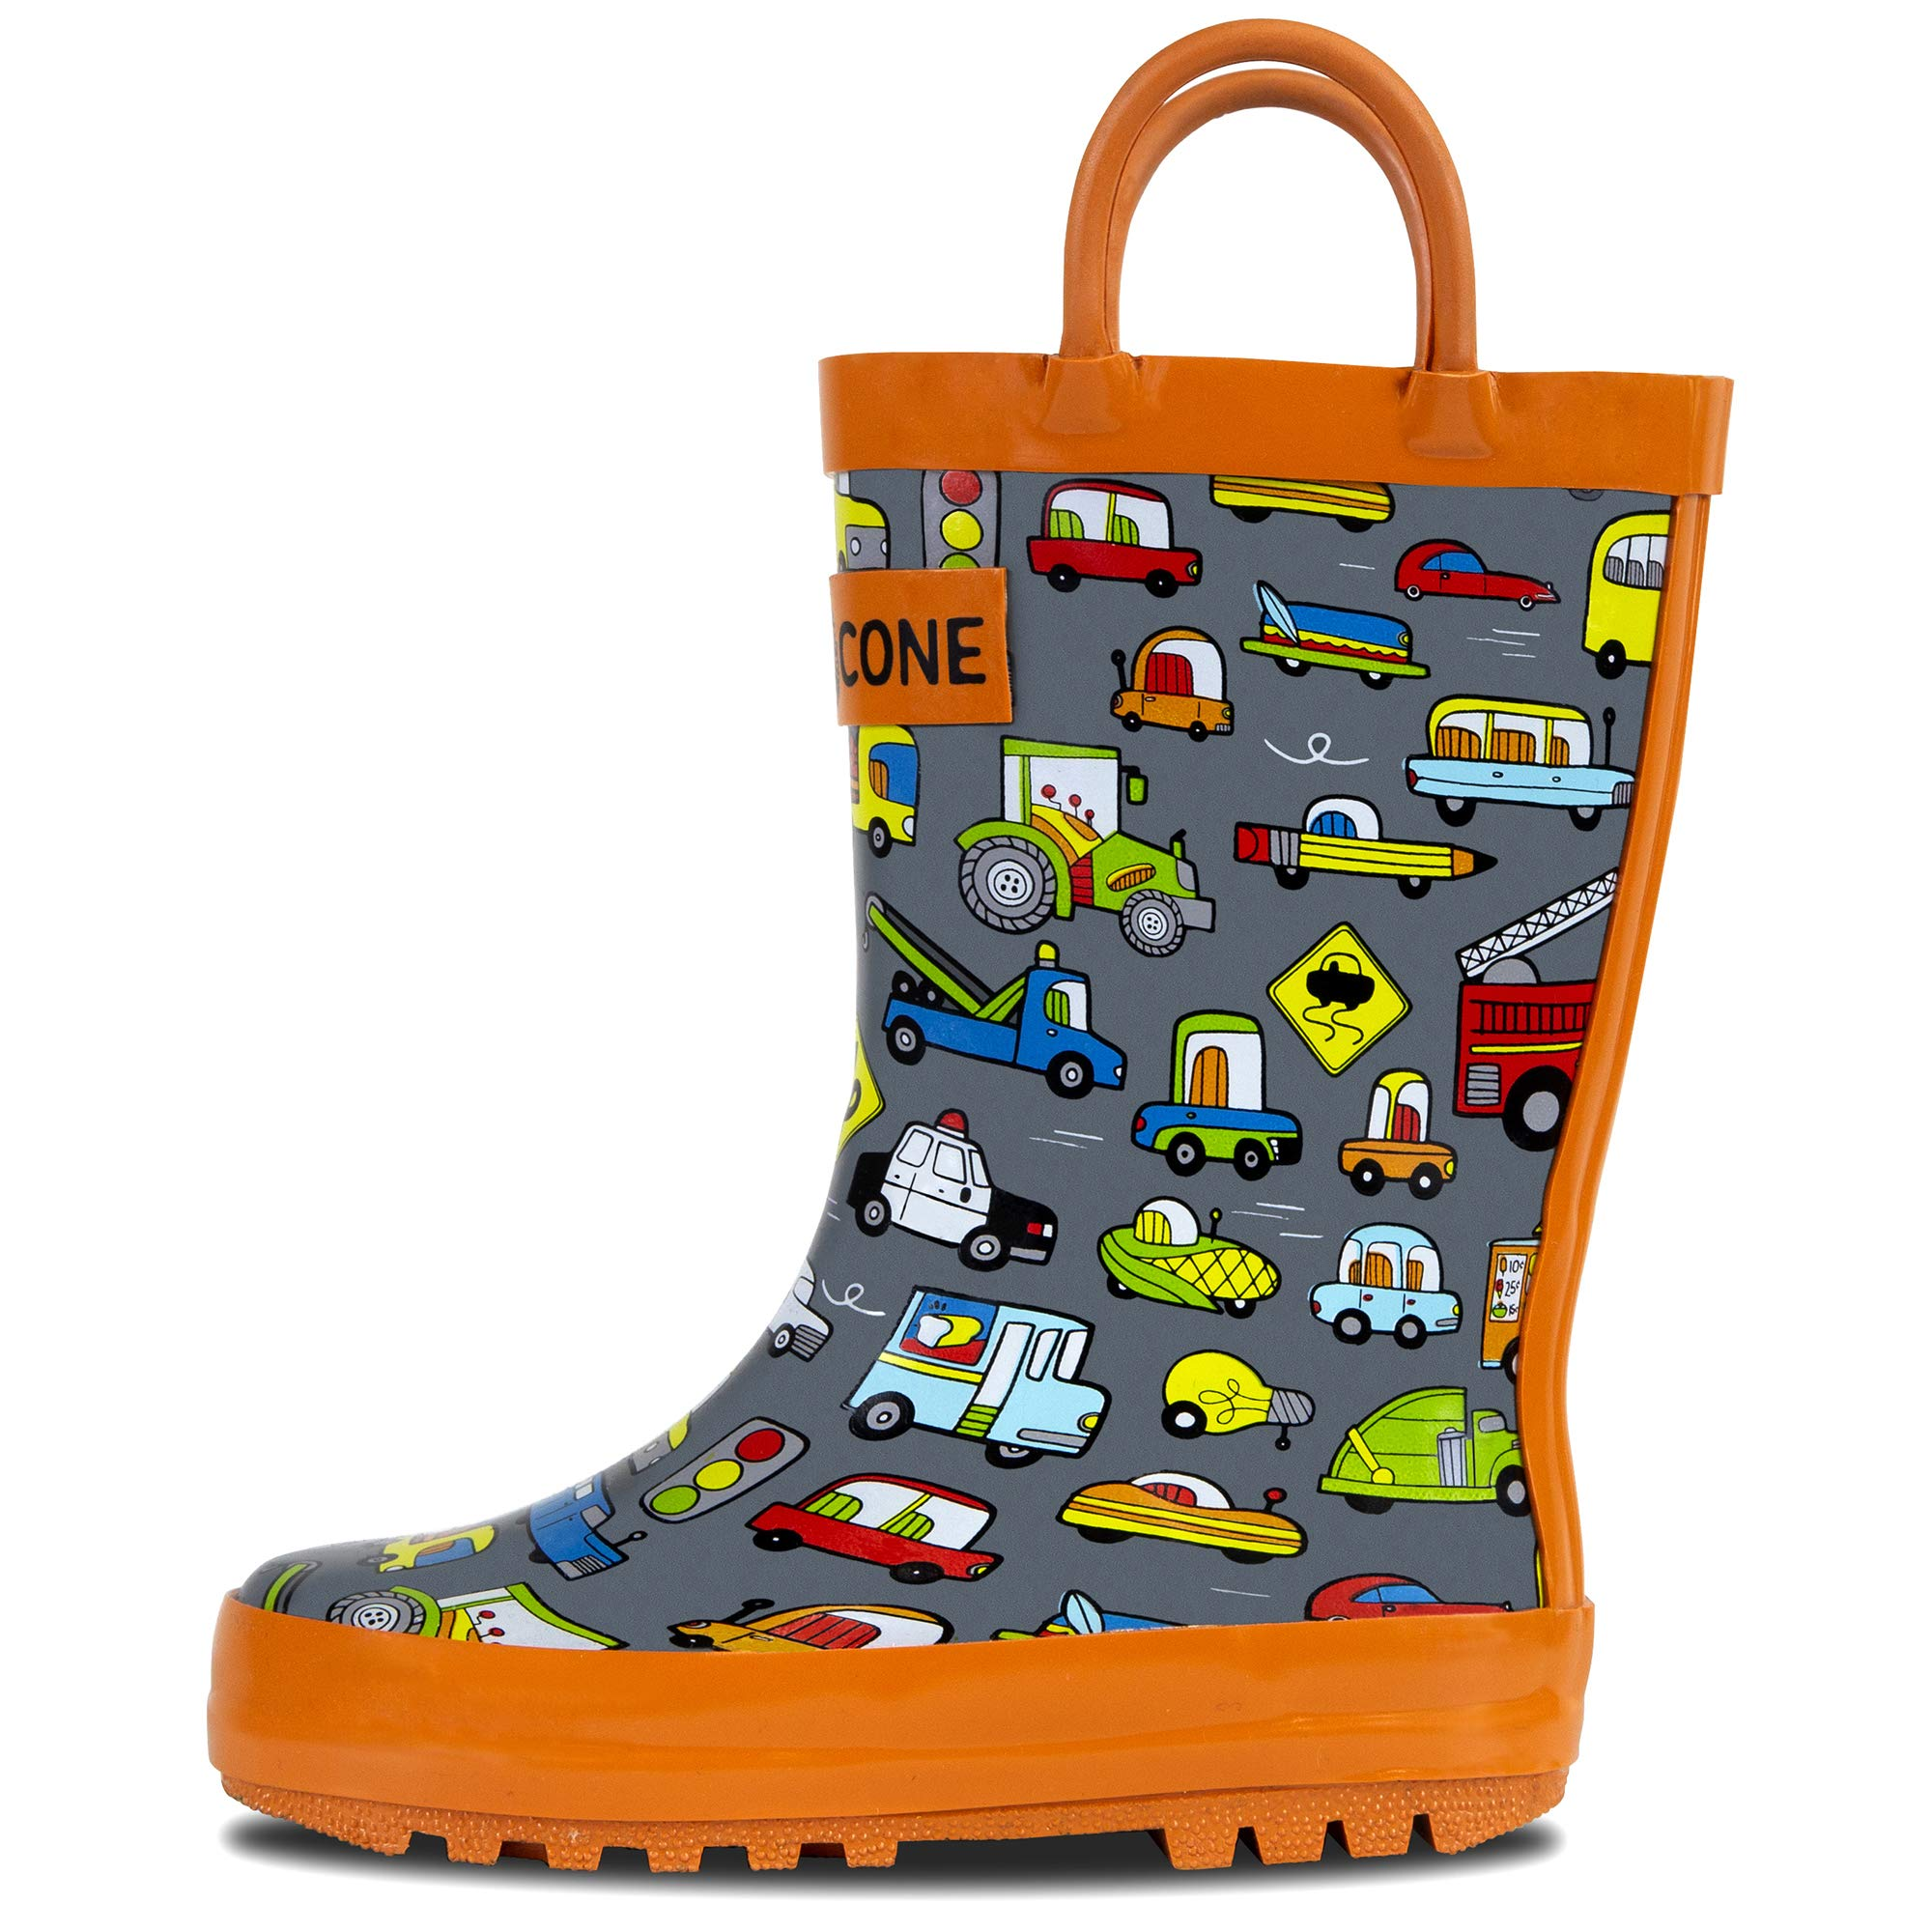 LONECONE Rain Boots with Easy-On Handles in Fun Patterns for Toddlers and Kids, Rush Hour, Toddler 8